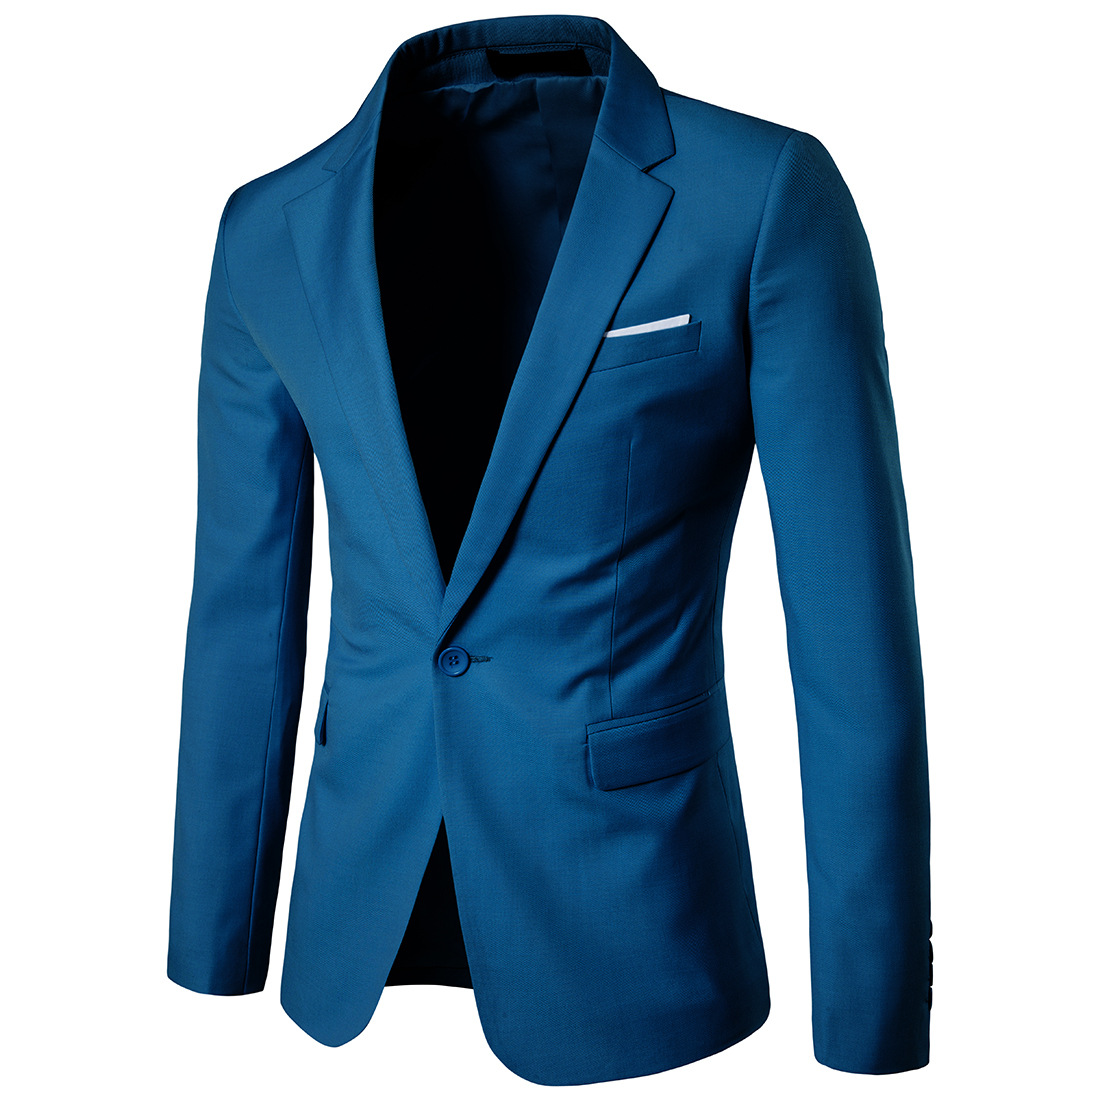 2019 Business Leisure Suit Lang Best Man Wedding One-Button Suit Jacket Men'S Wear 9-Color S-6xl Xf001